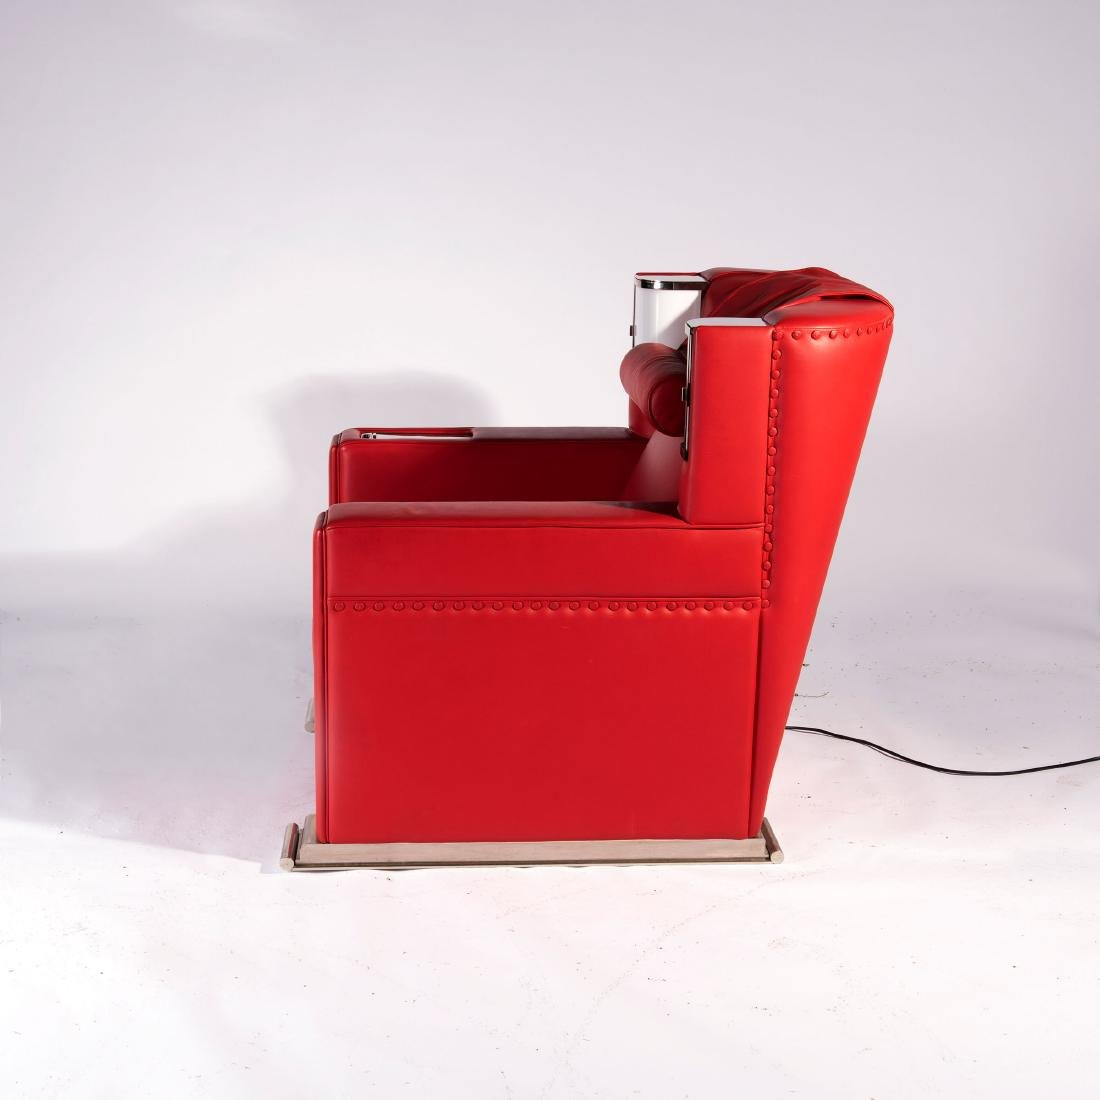 'Red comfortable chair', 1931 - 5